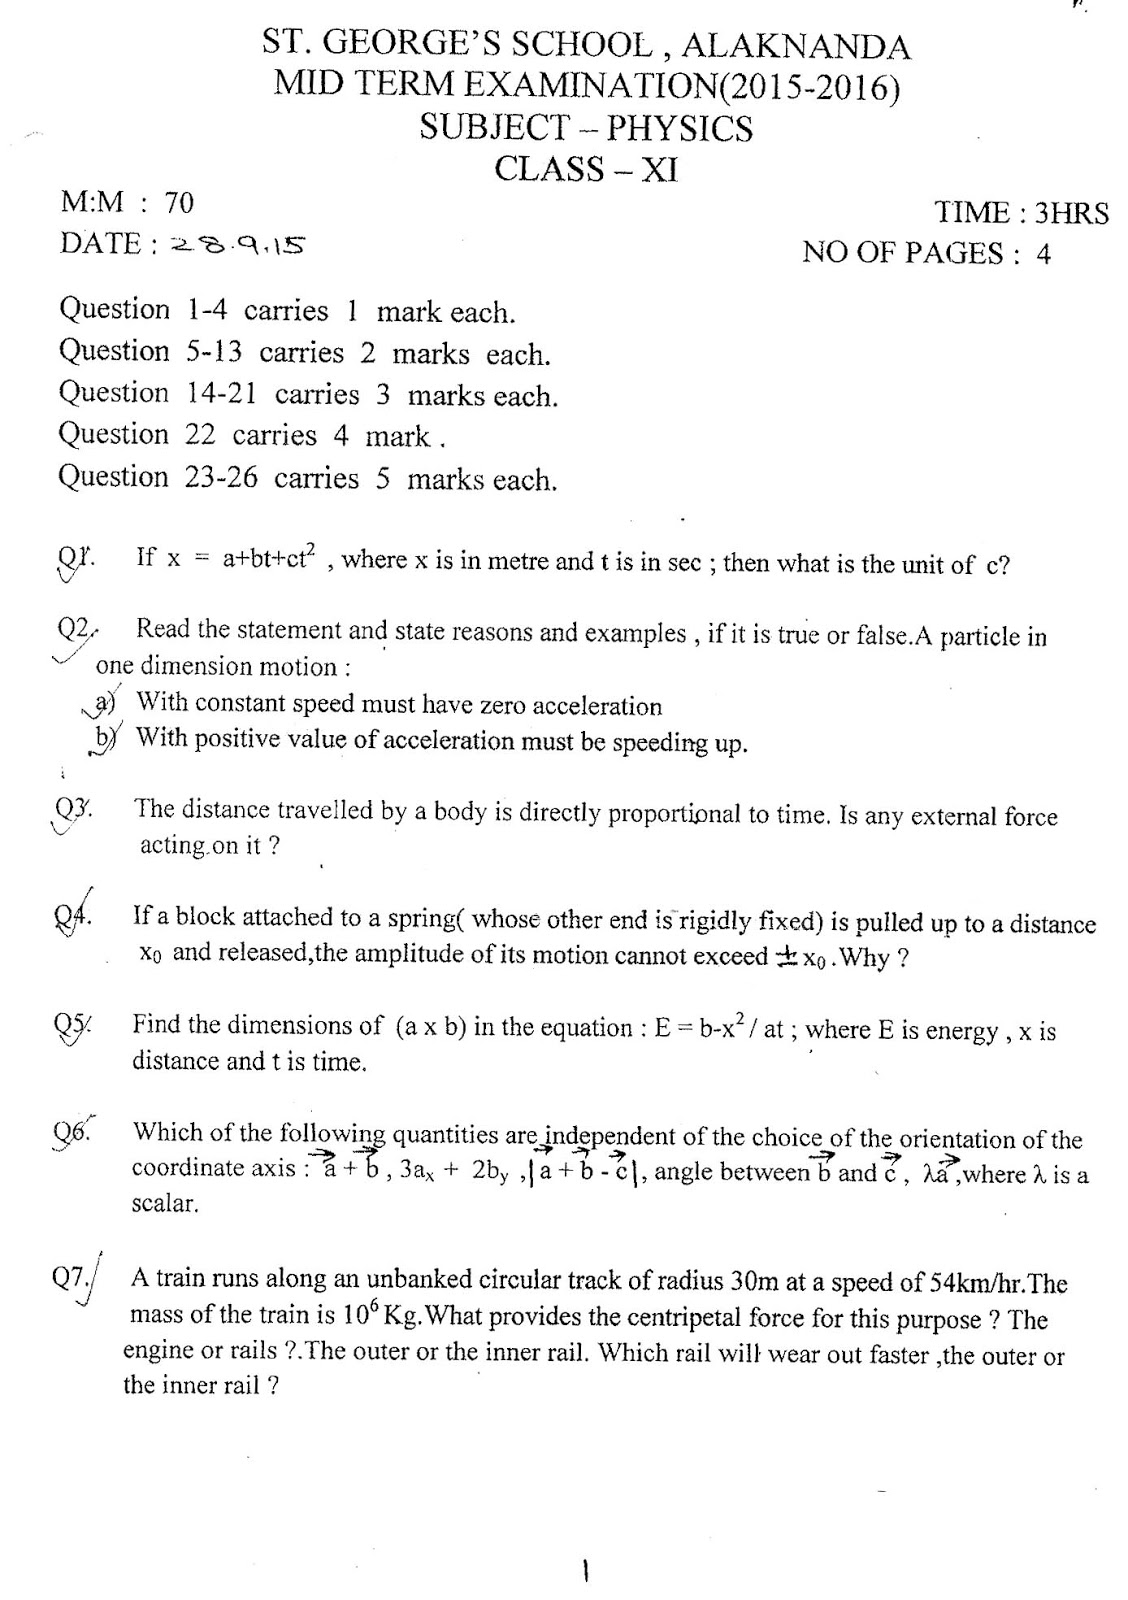 physics mid term questions Physics 214 midterm exam spring 2012 2 of 13 pages (26 problems) exam grading policy— the exam is worth a total of points, composed of two types of questions.